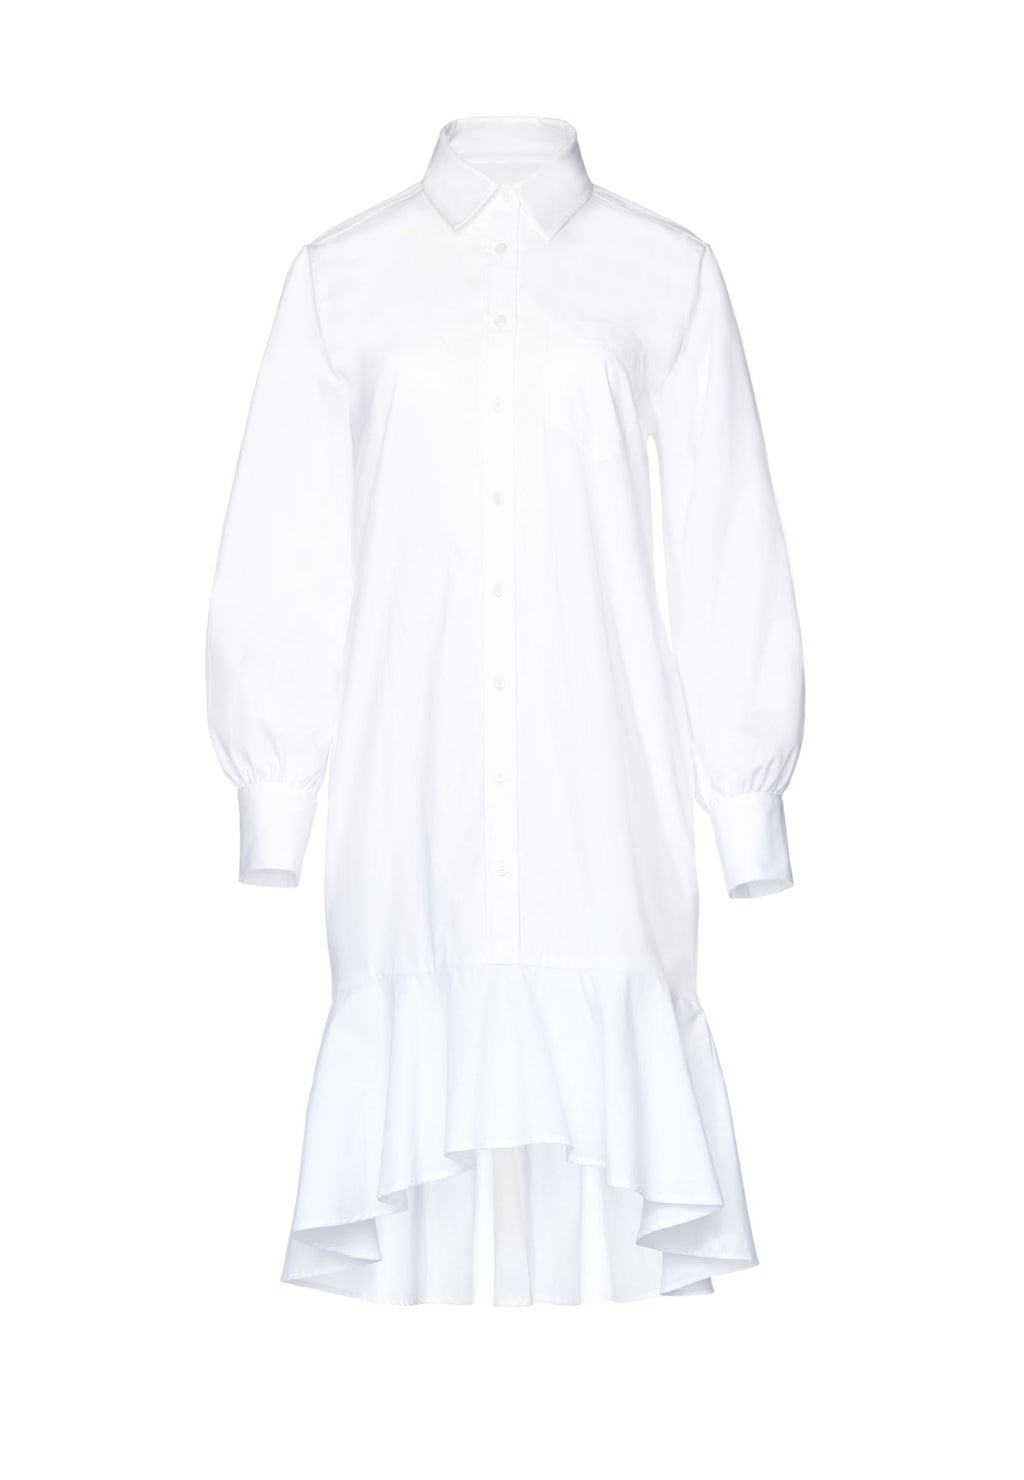 Michelle Button-Up Shirt Dress - White